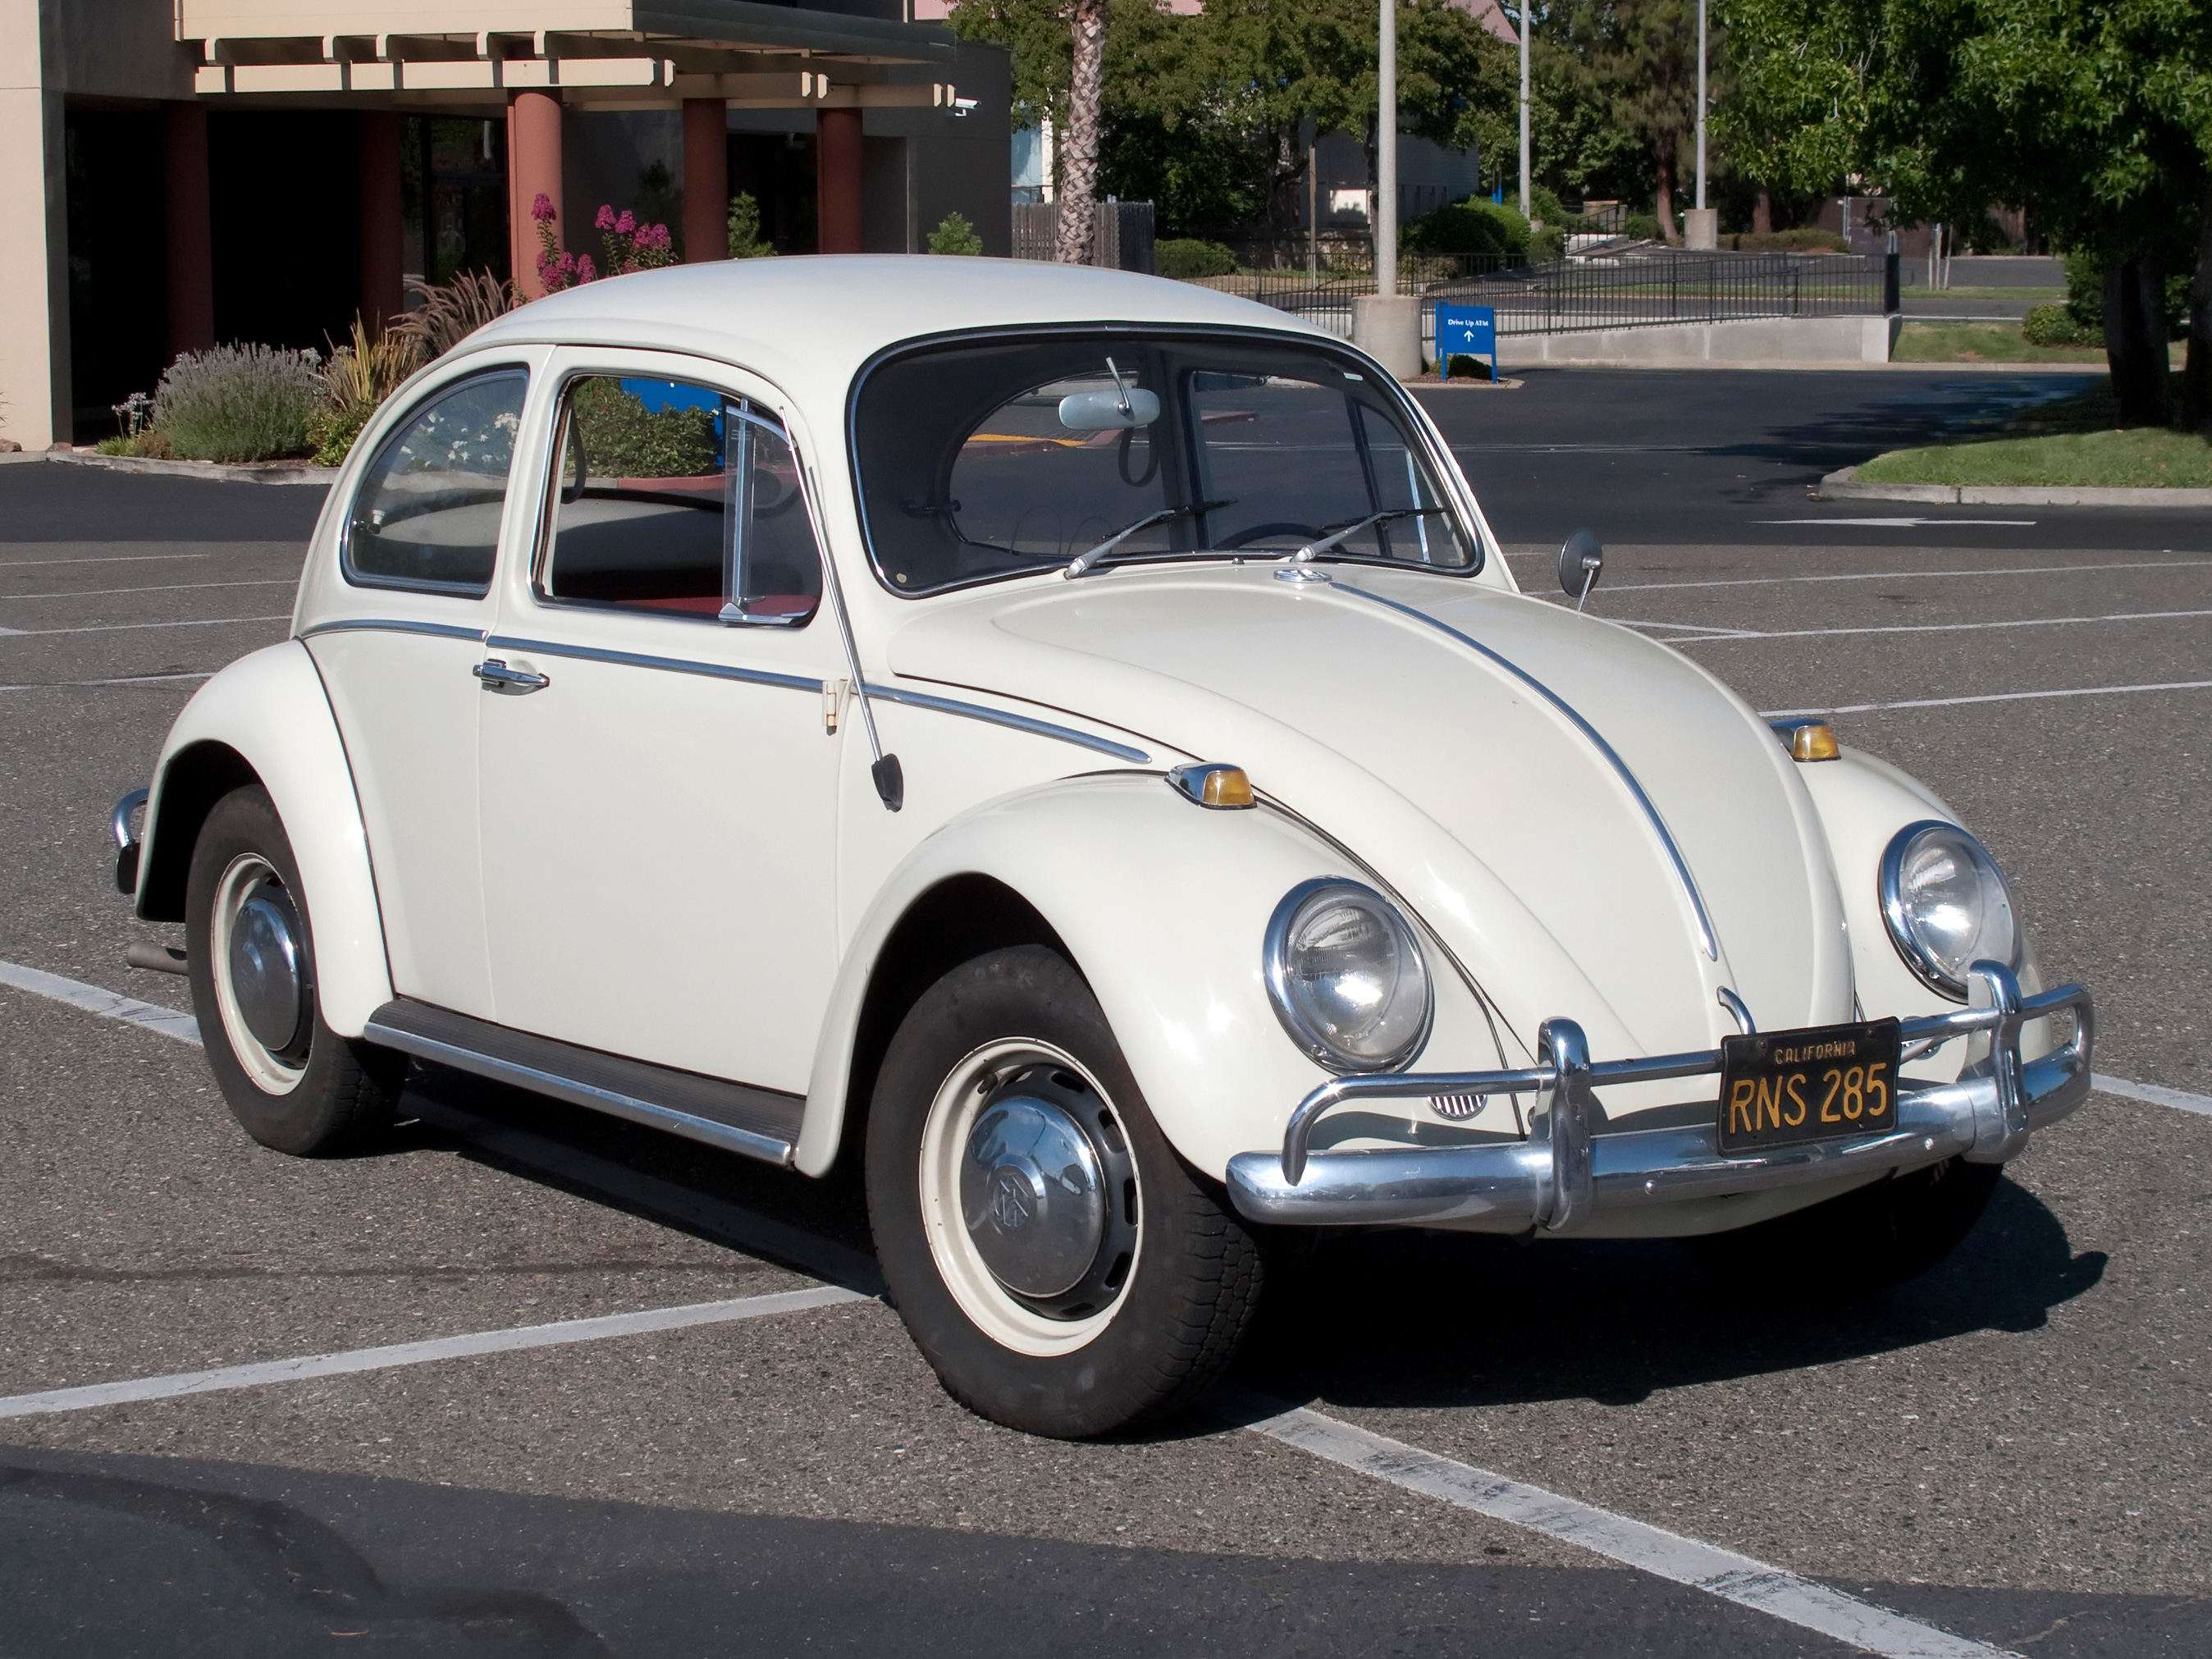 hatchback com car march beetle the is article seo carfromjapan review cheap week volkswagen here